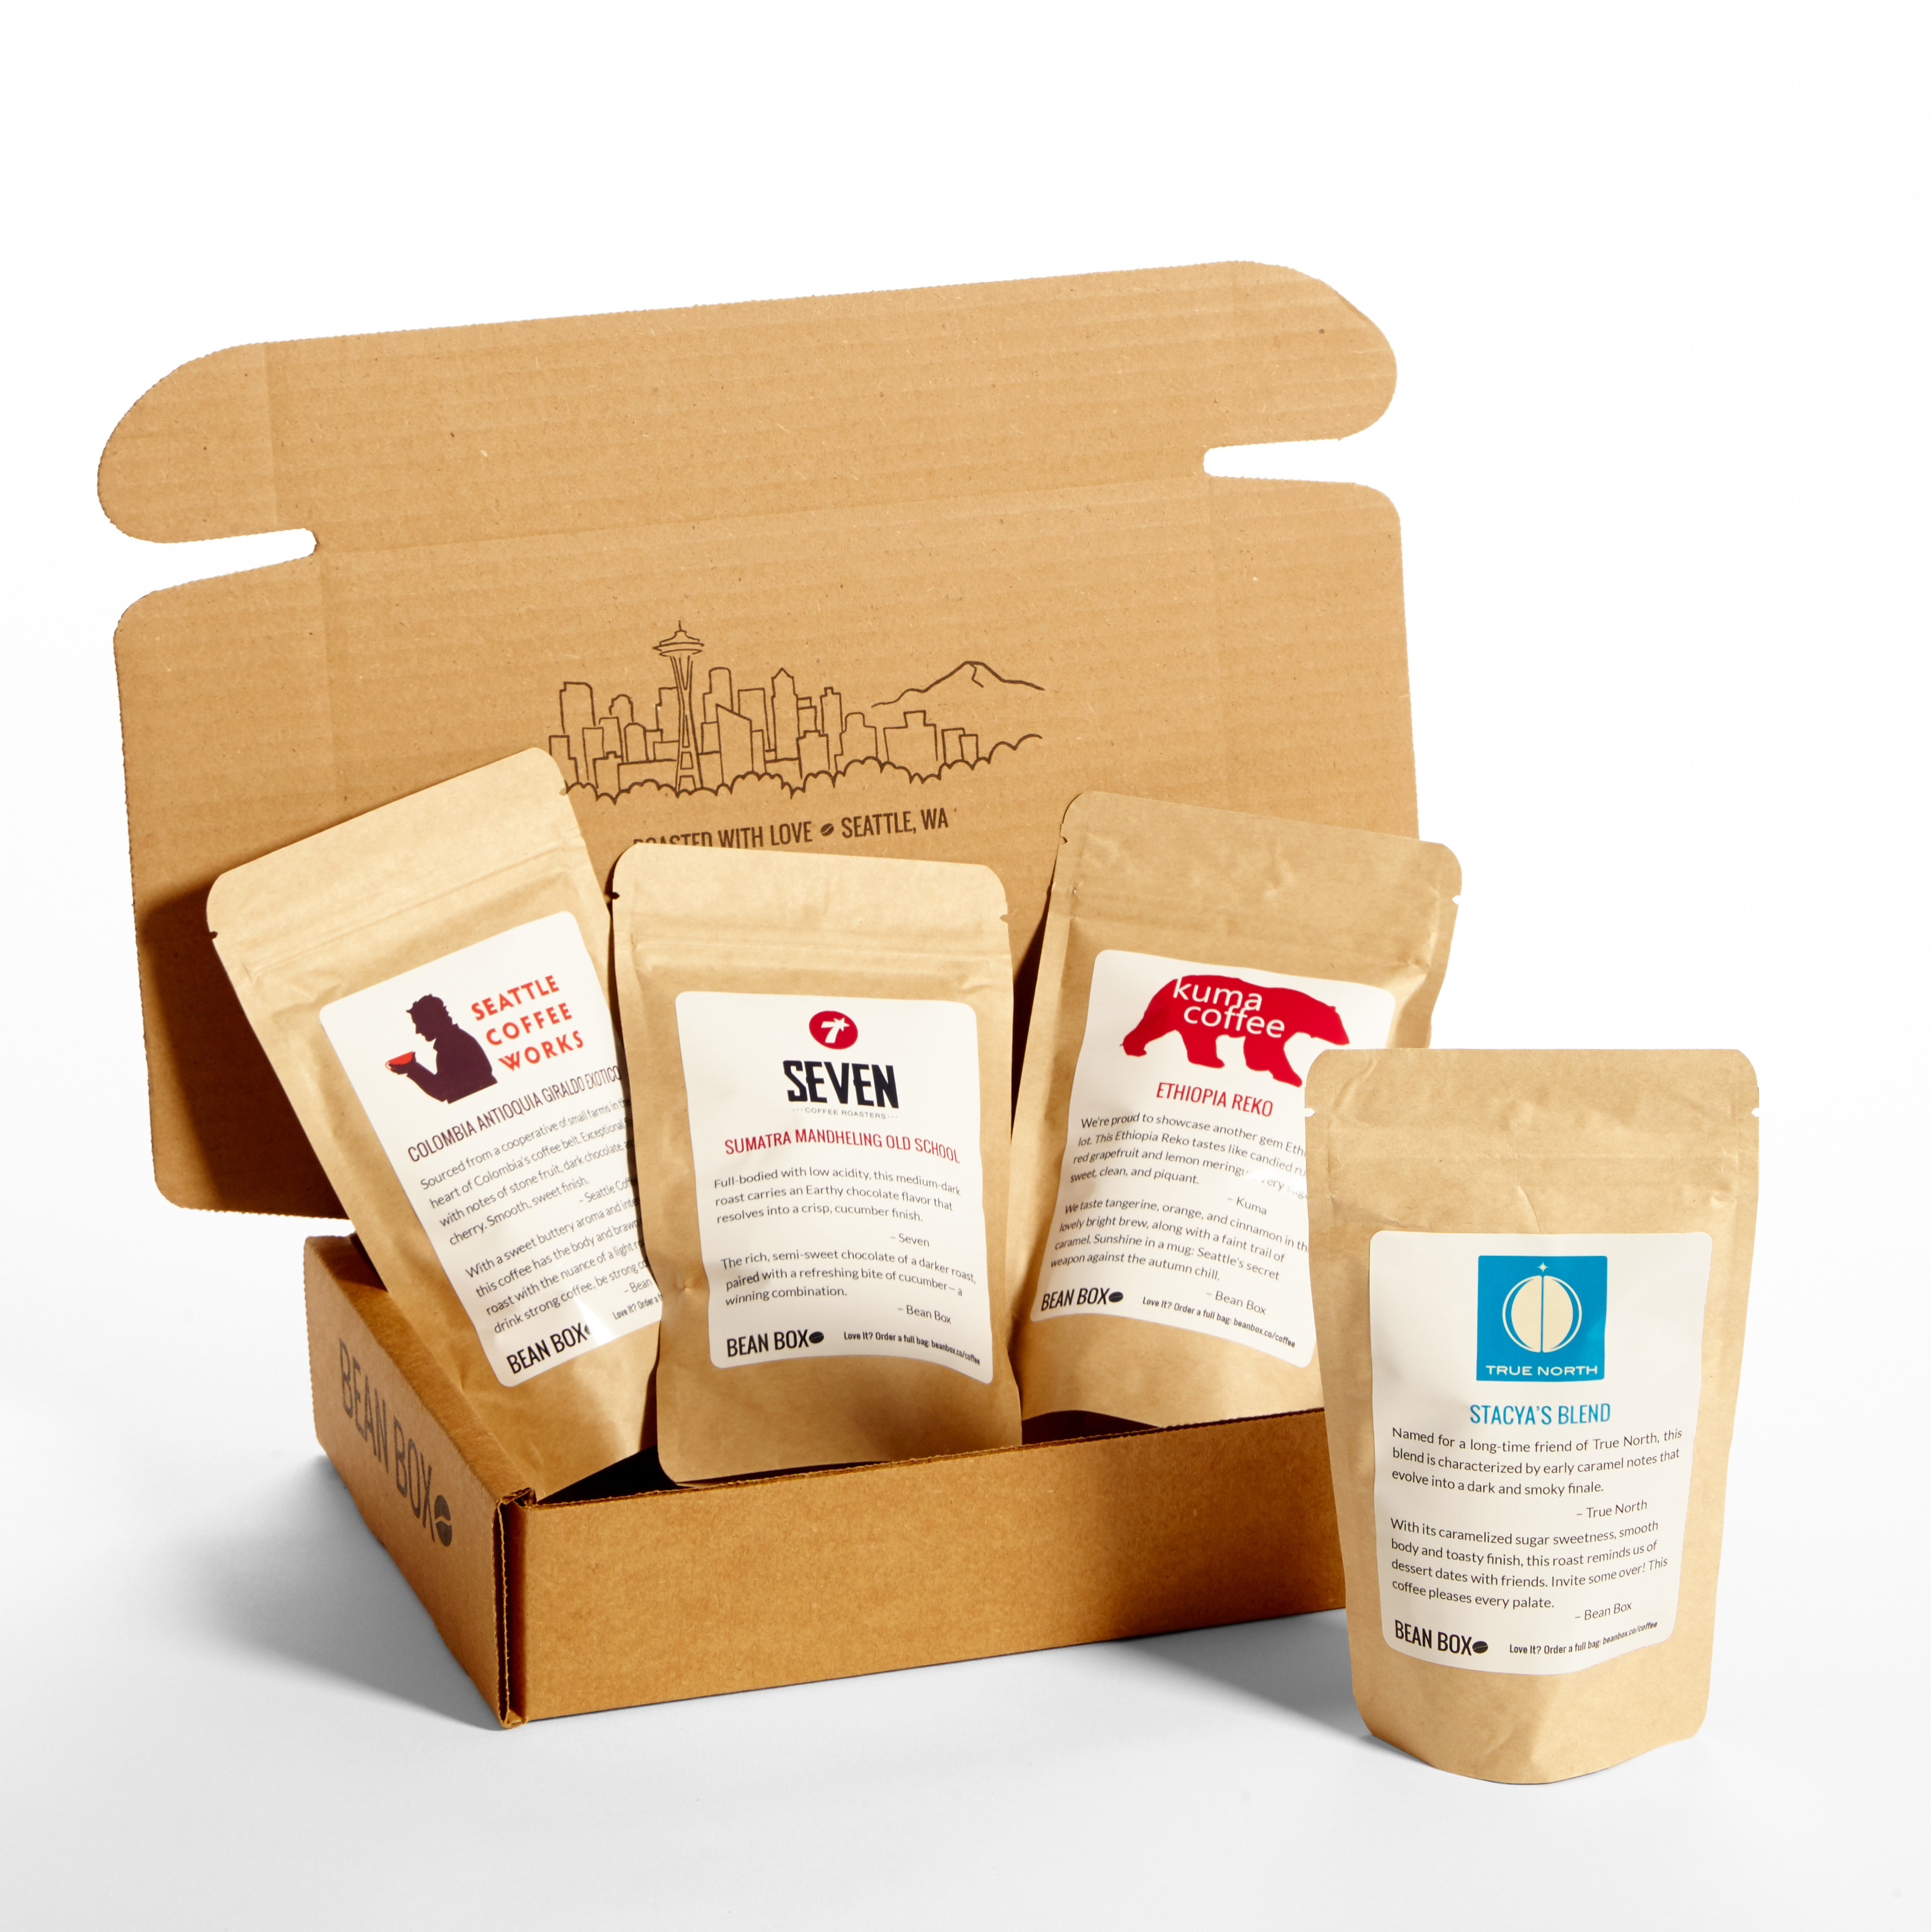 Bean Box Gourmet Coffee Sampler, Variety of Roasts, 4 Bags